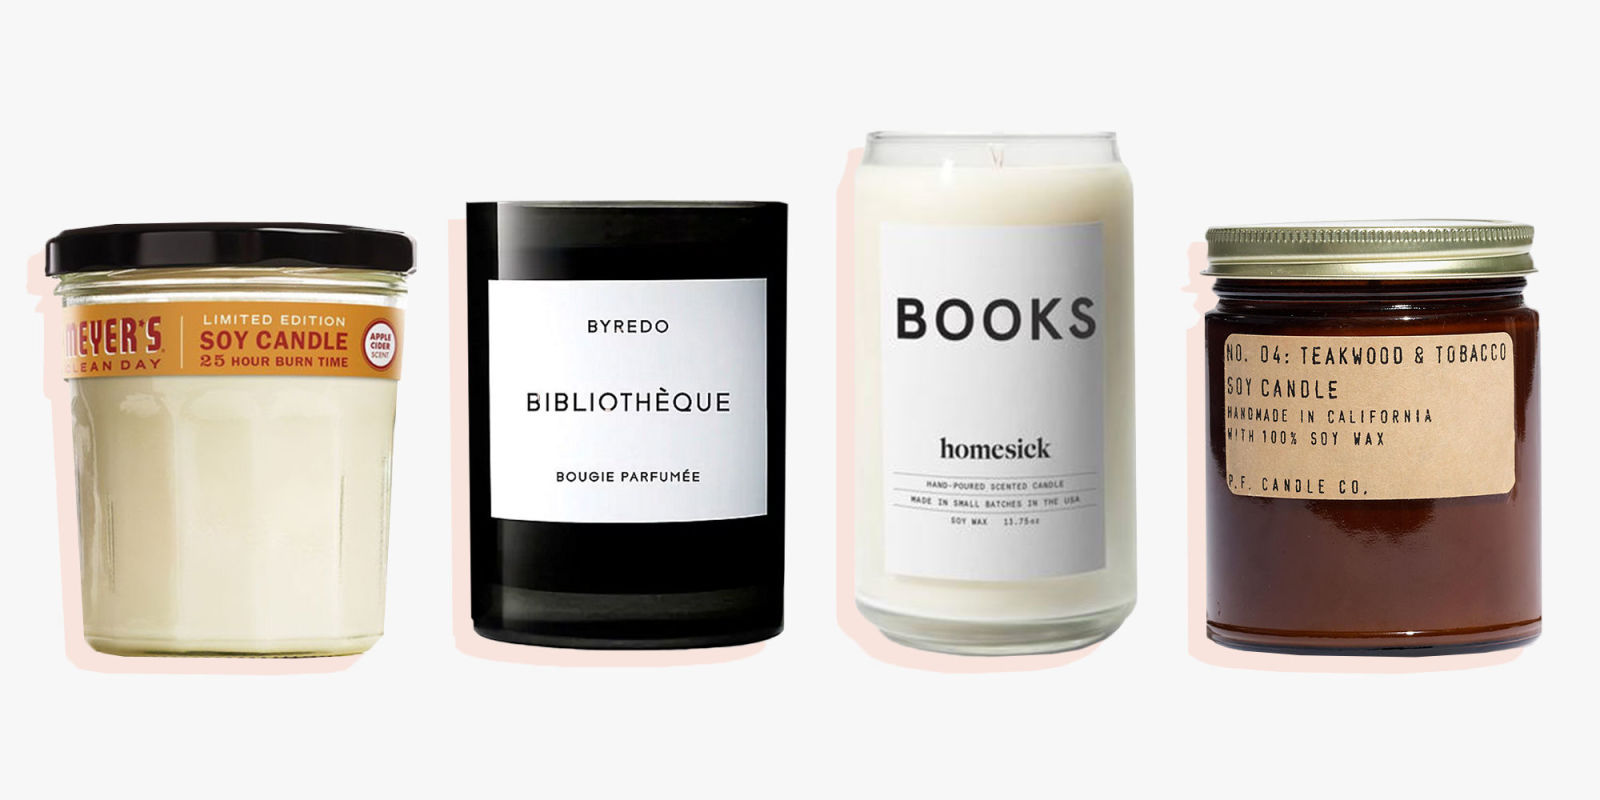 10 best scented candles for fall 2017 decorative scented